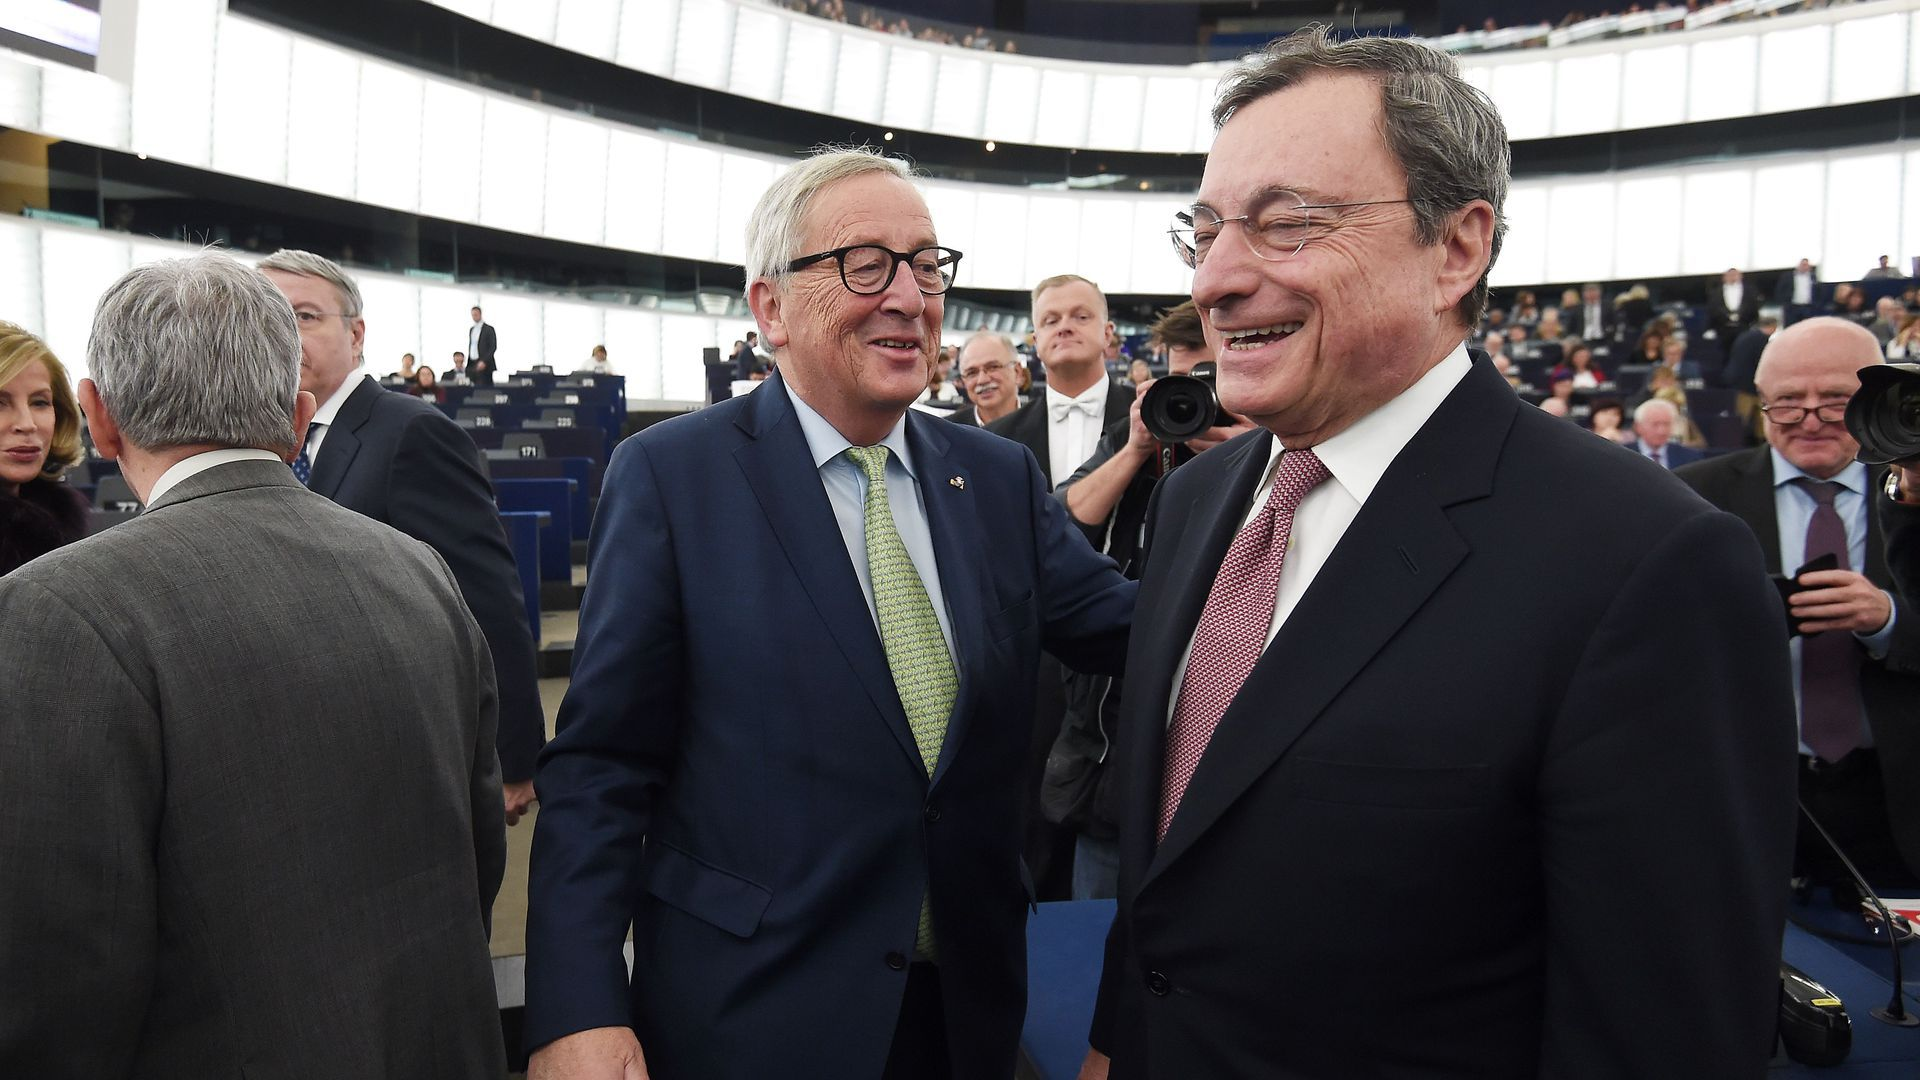 European Commission President Jean-Claude Juncker (L) and President of the European Central Bank Mario Draghi